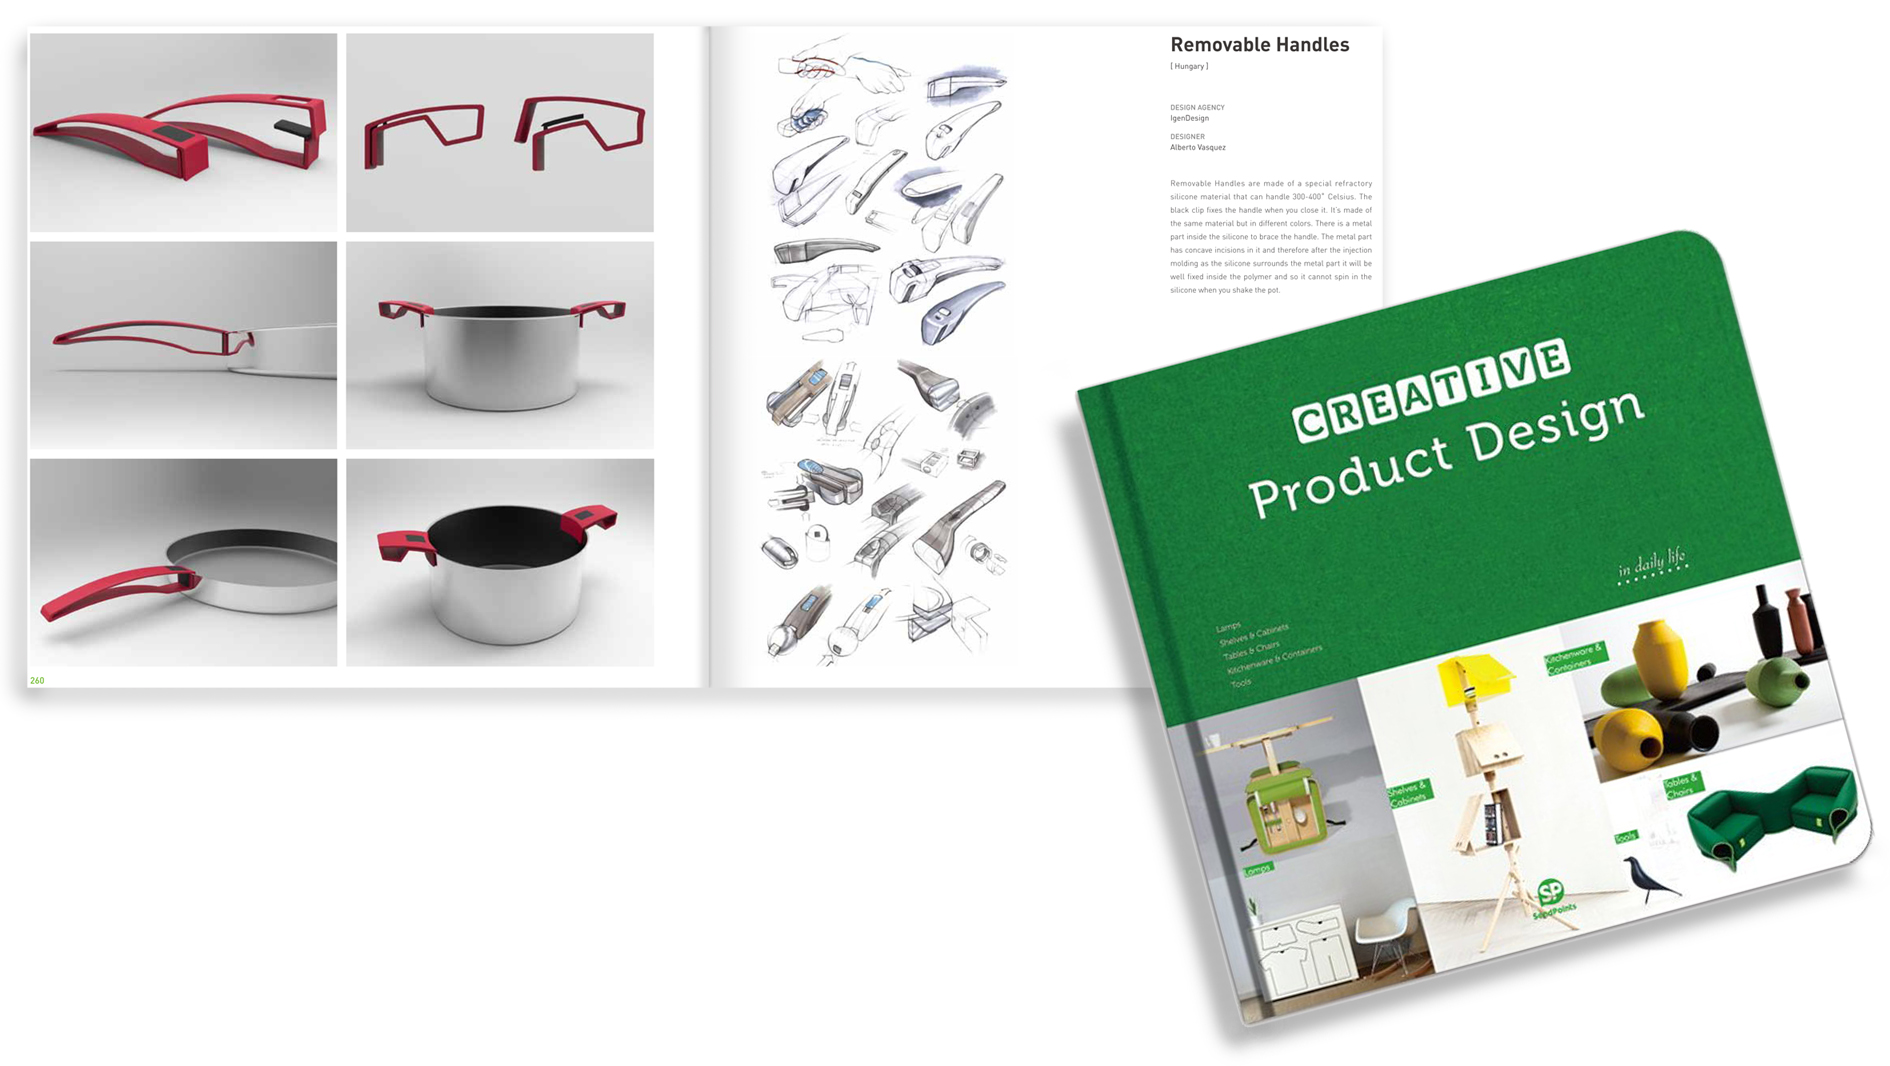 Igendesign product design and innovation consultants for Designed product